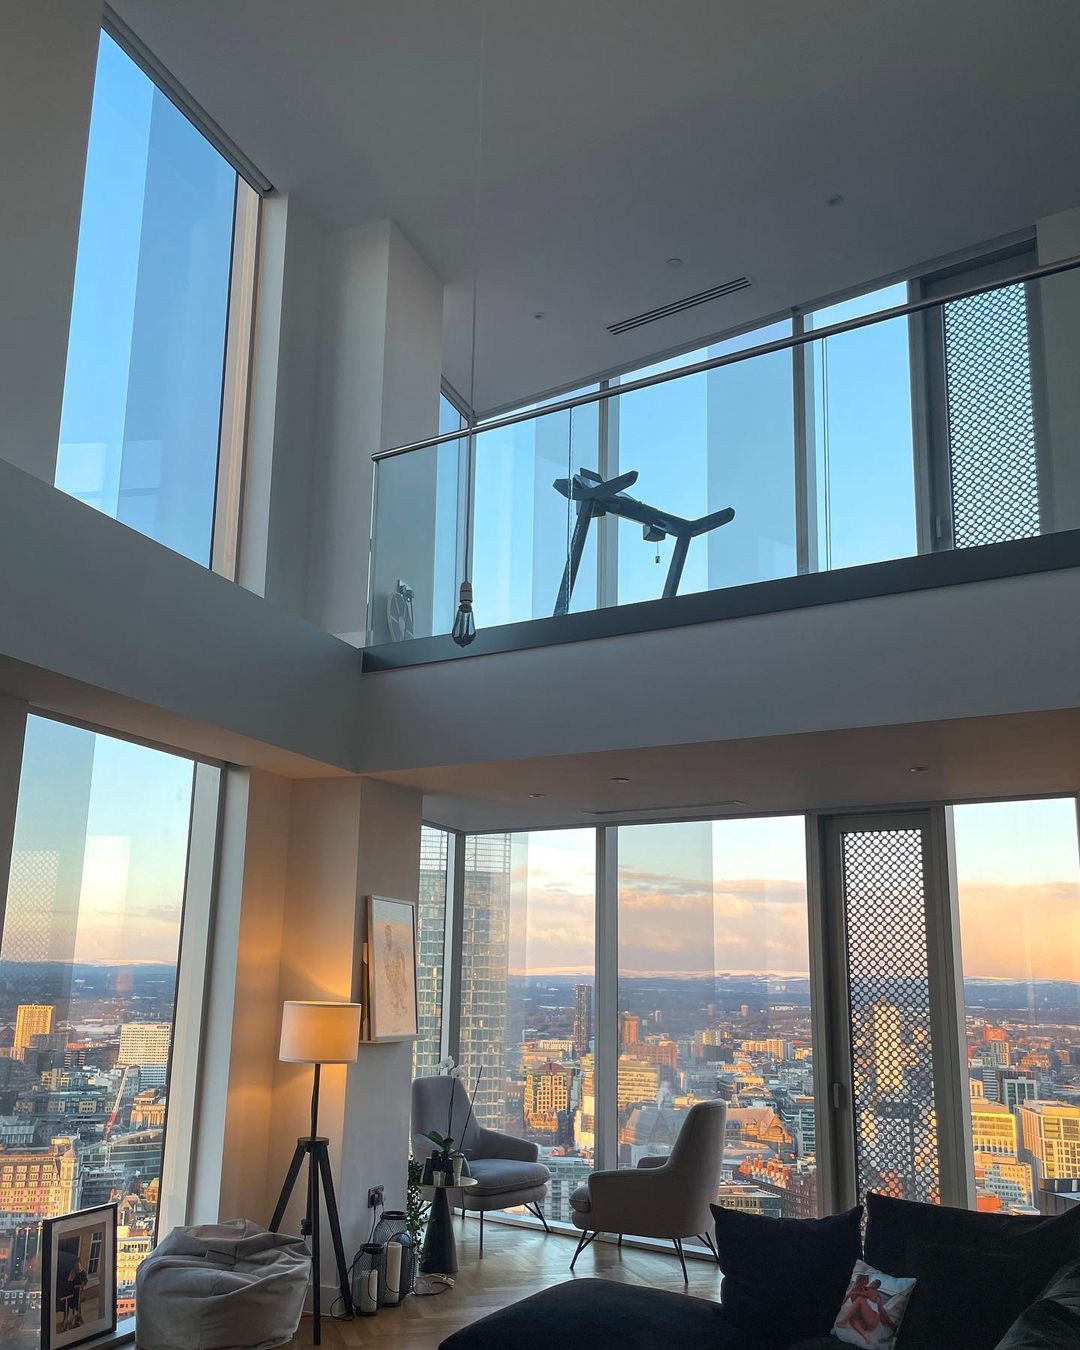 They are currently renting a penthouse in Manchester